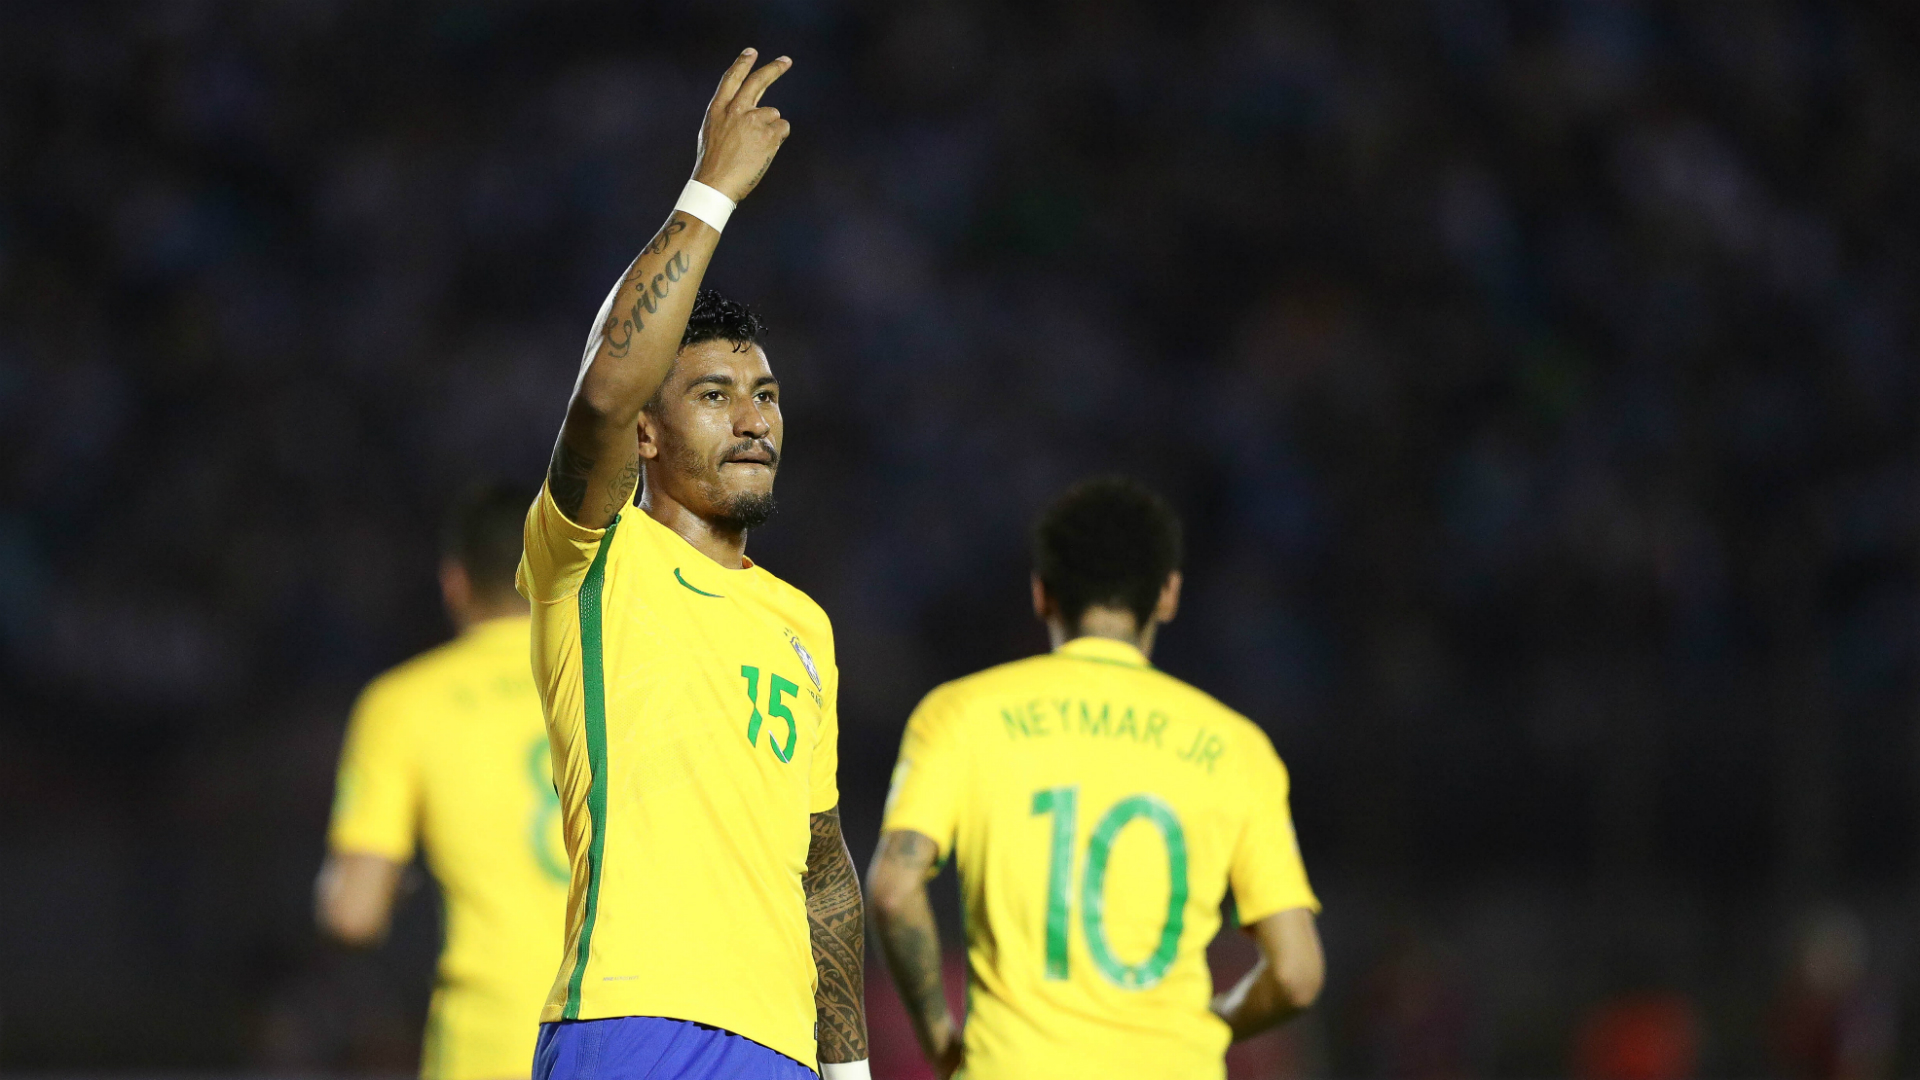 Spurred on by criticism, Paulinho scores crucial hat-trick